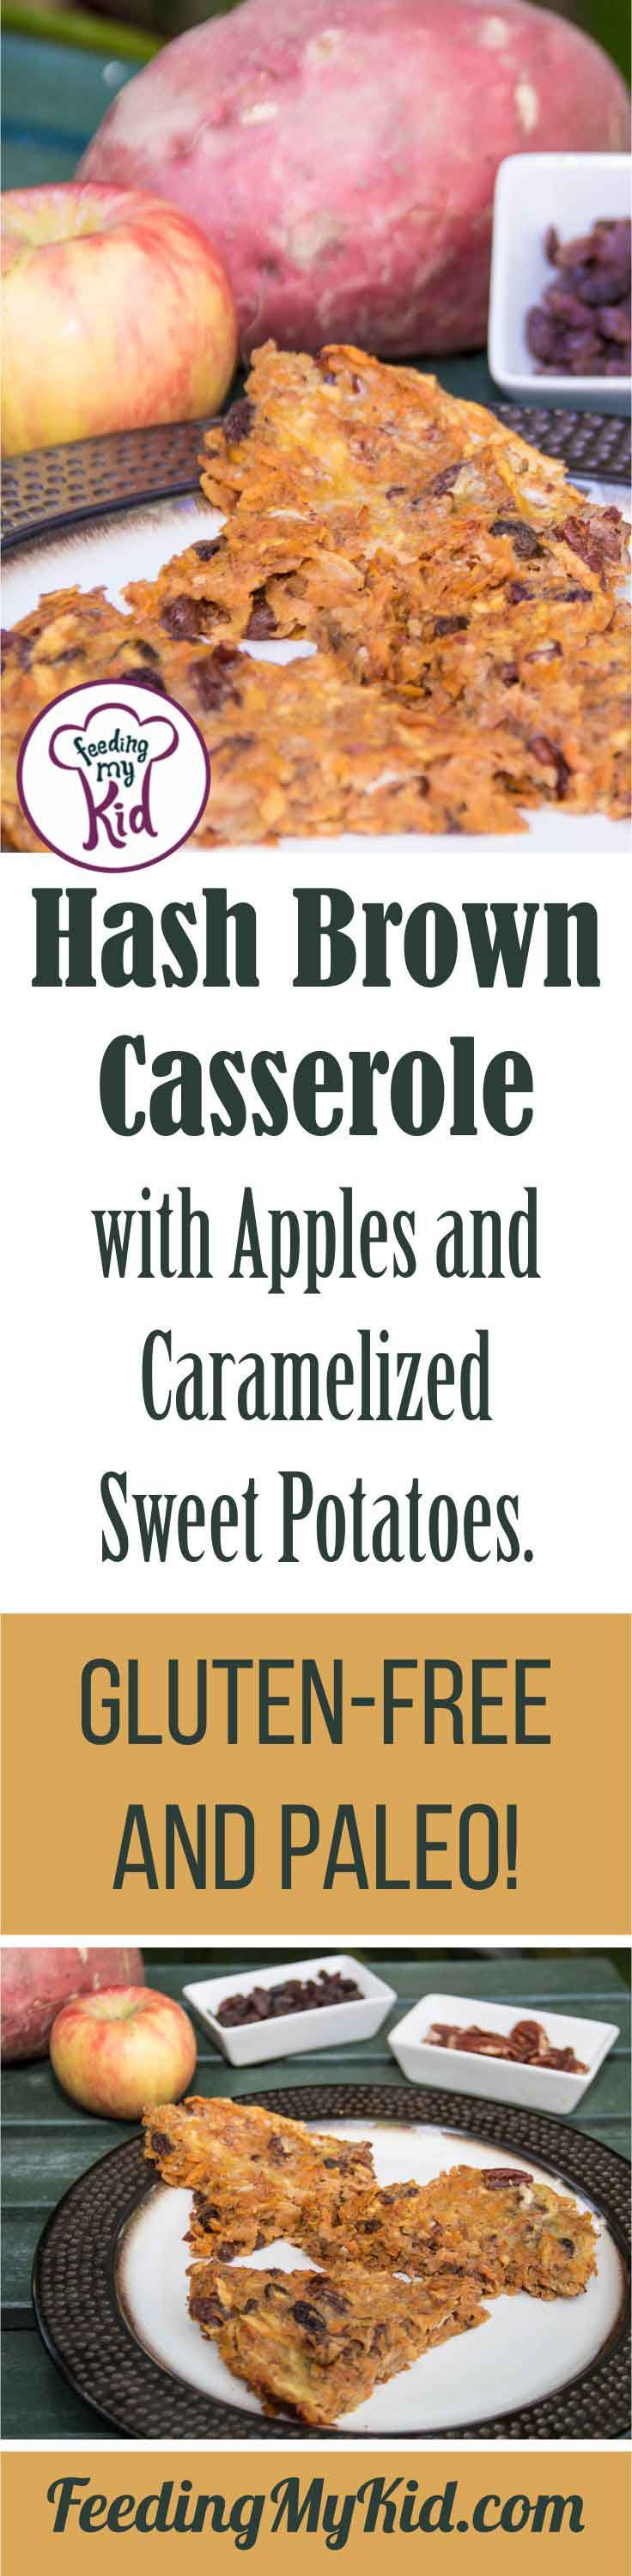 Hash Brown Casserole with Apples and Caramelized Sweet